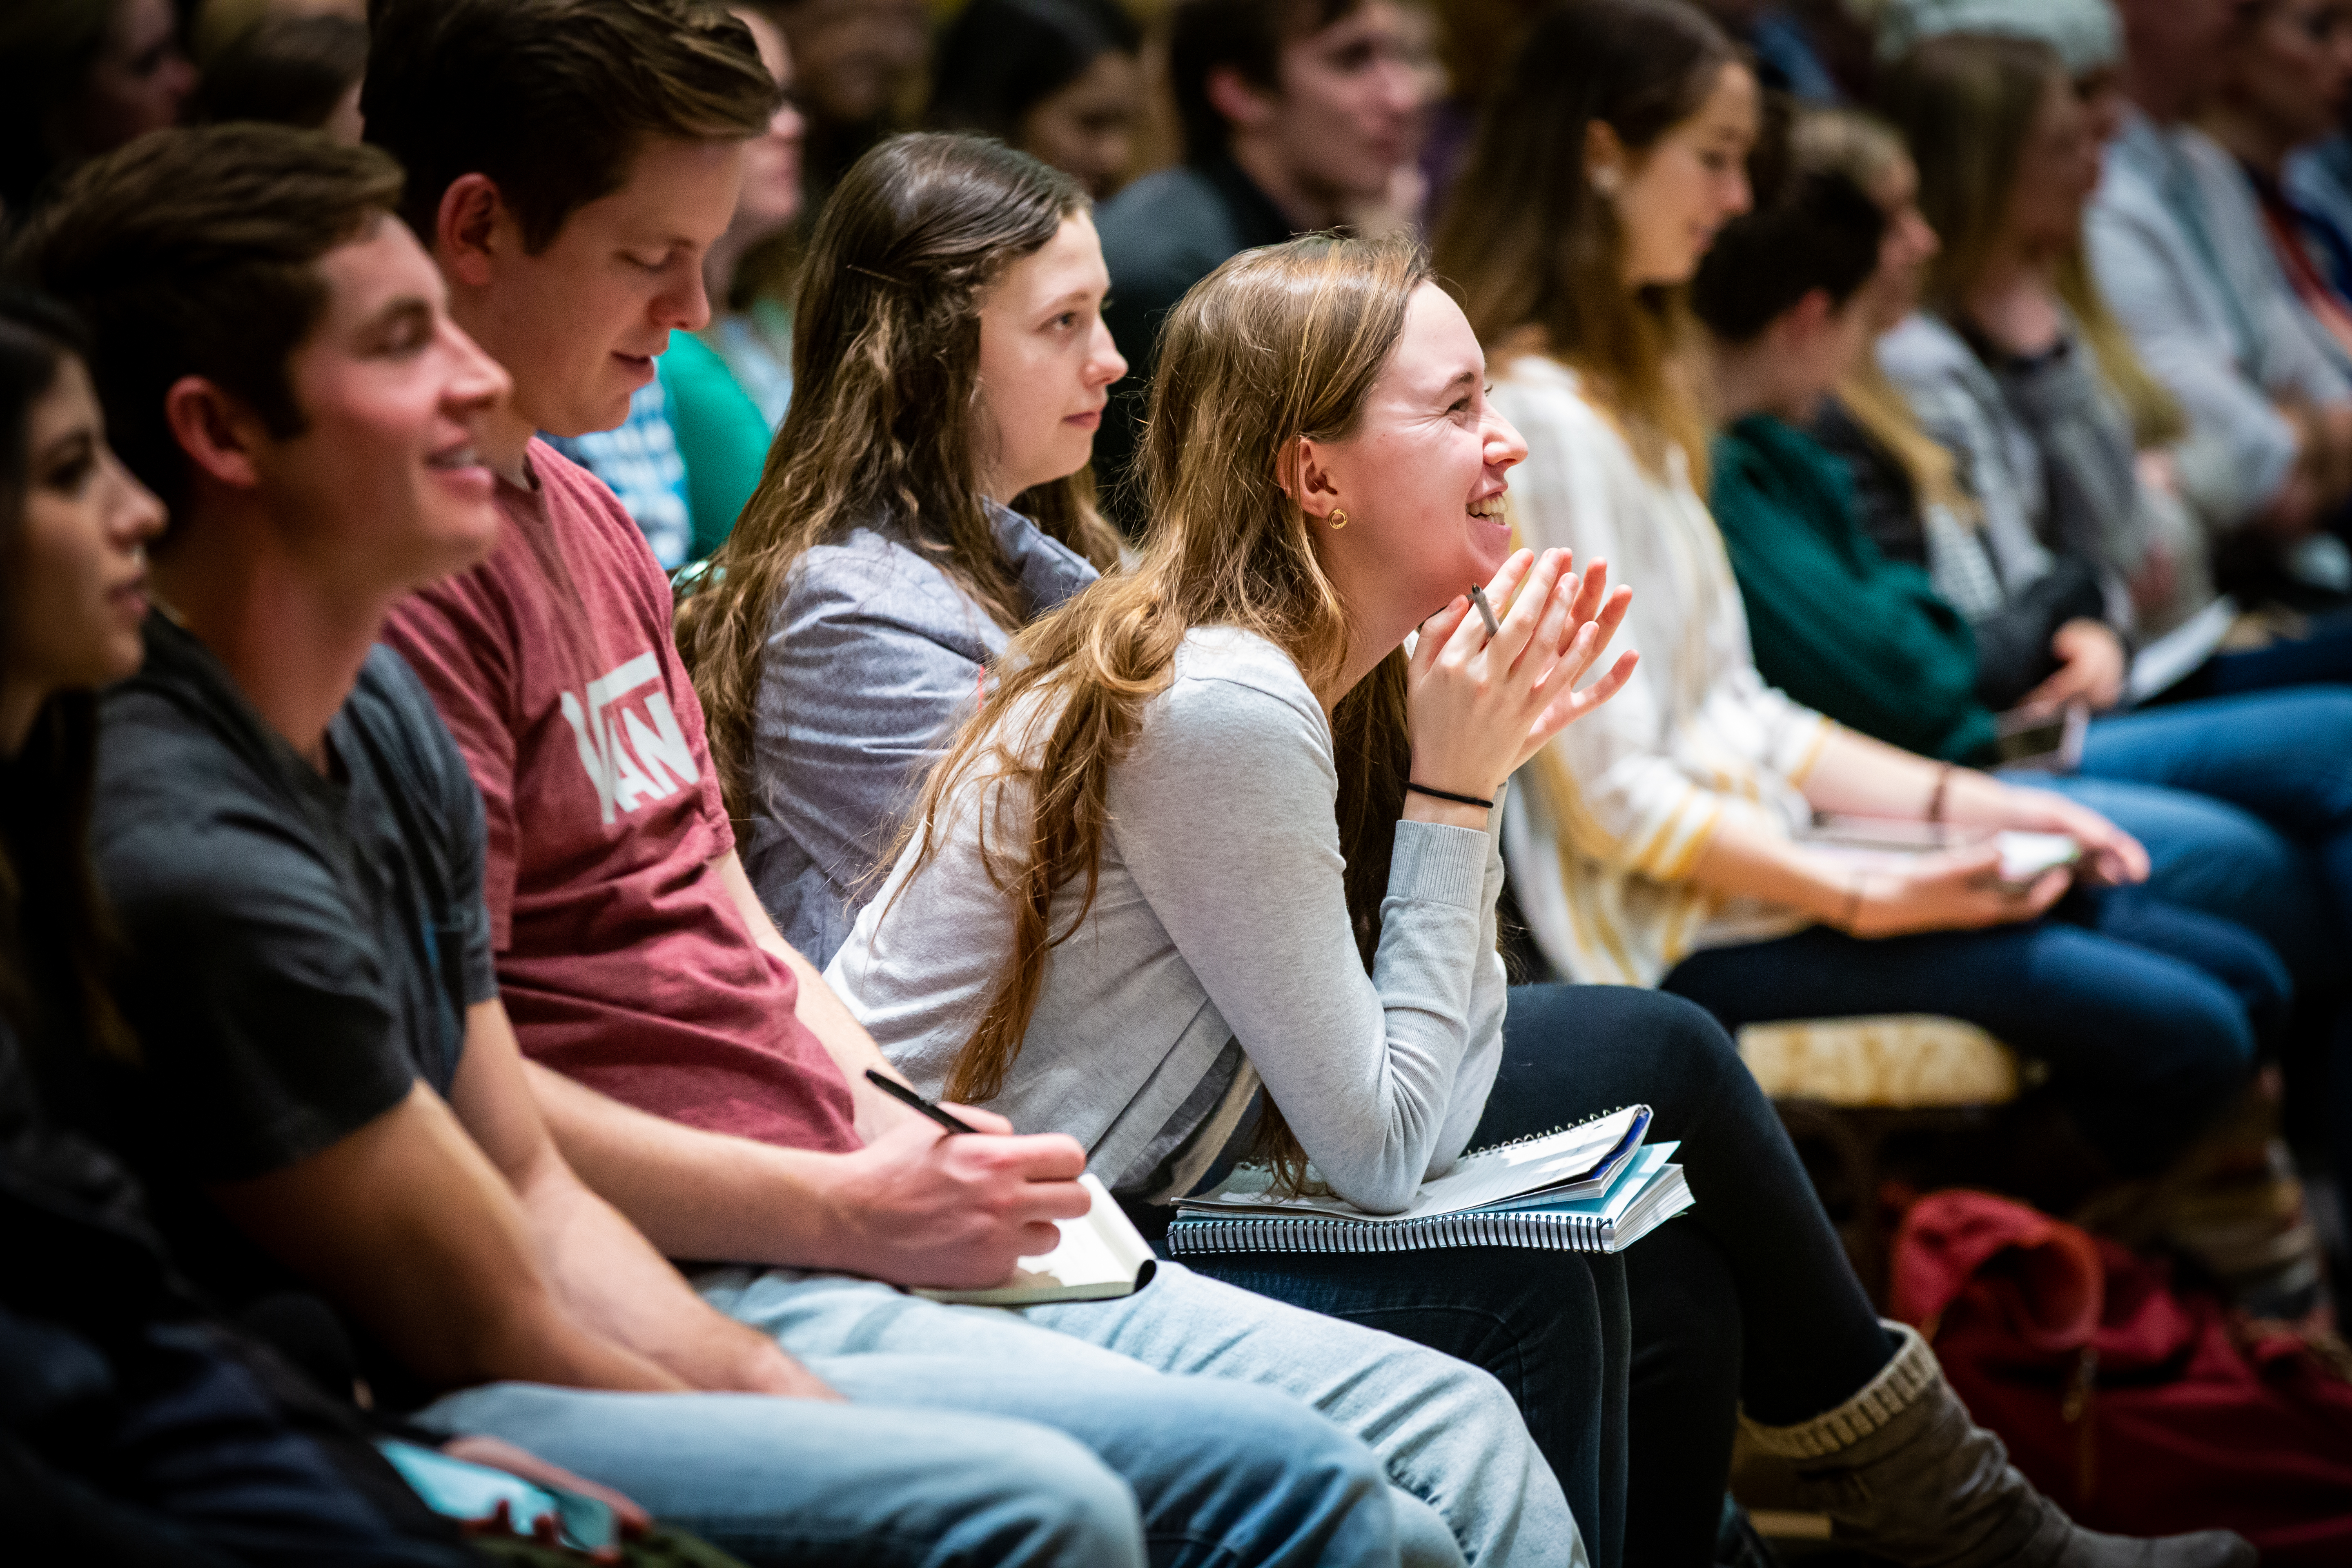 Students attending the 15th Annual Marjorie Pay Hinckley Lecture on Feb. 7, 2019 listen to guest speaker Dr. Scott Stanley in the Hinckley building on the BYU Provo, Utah campus.